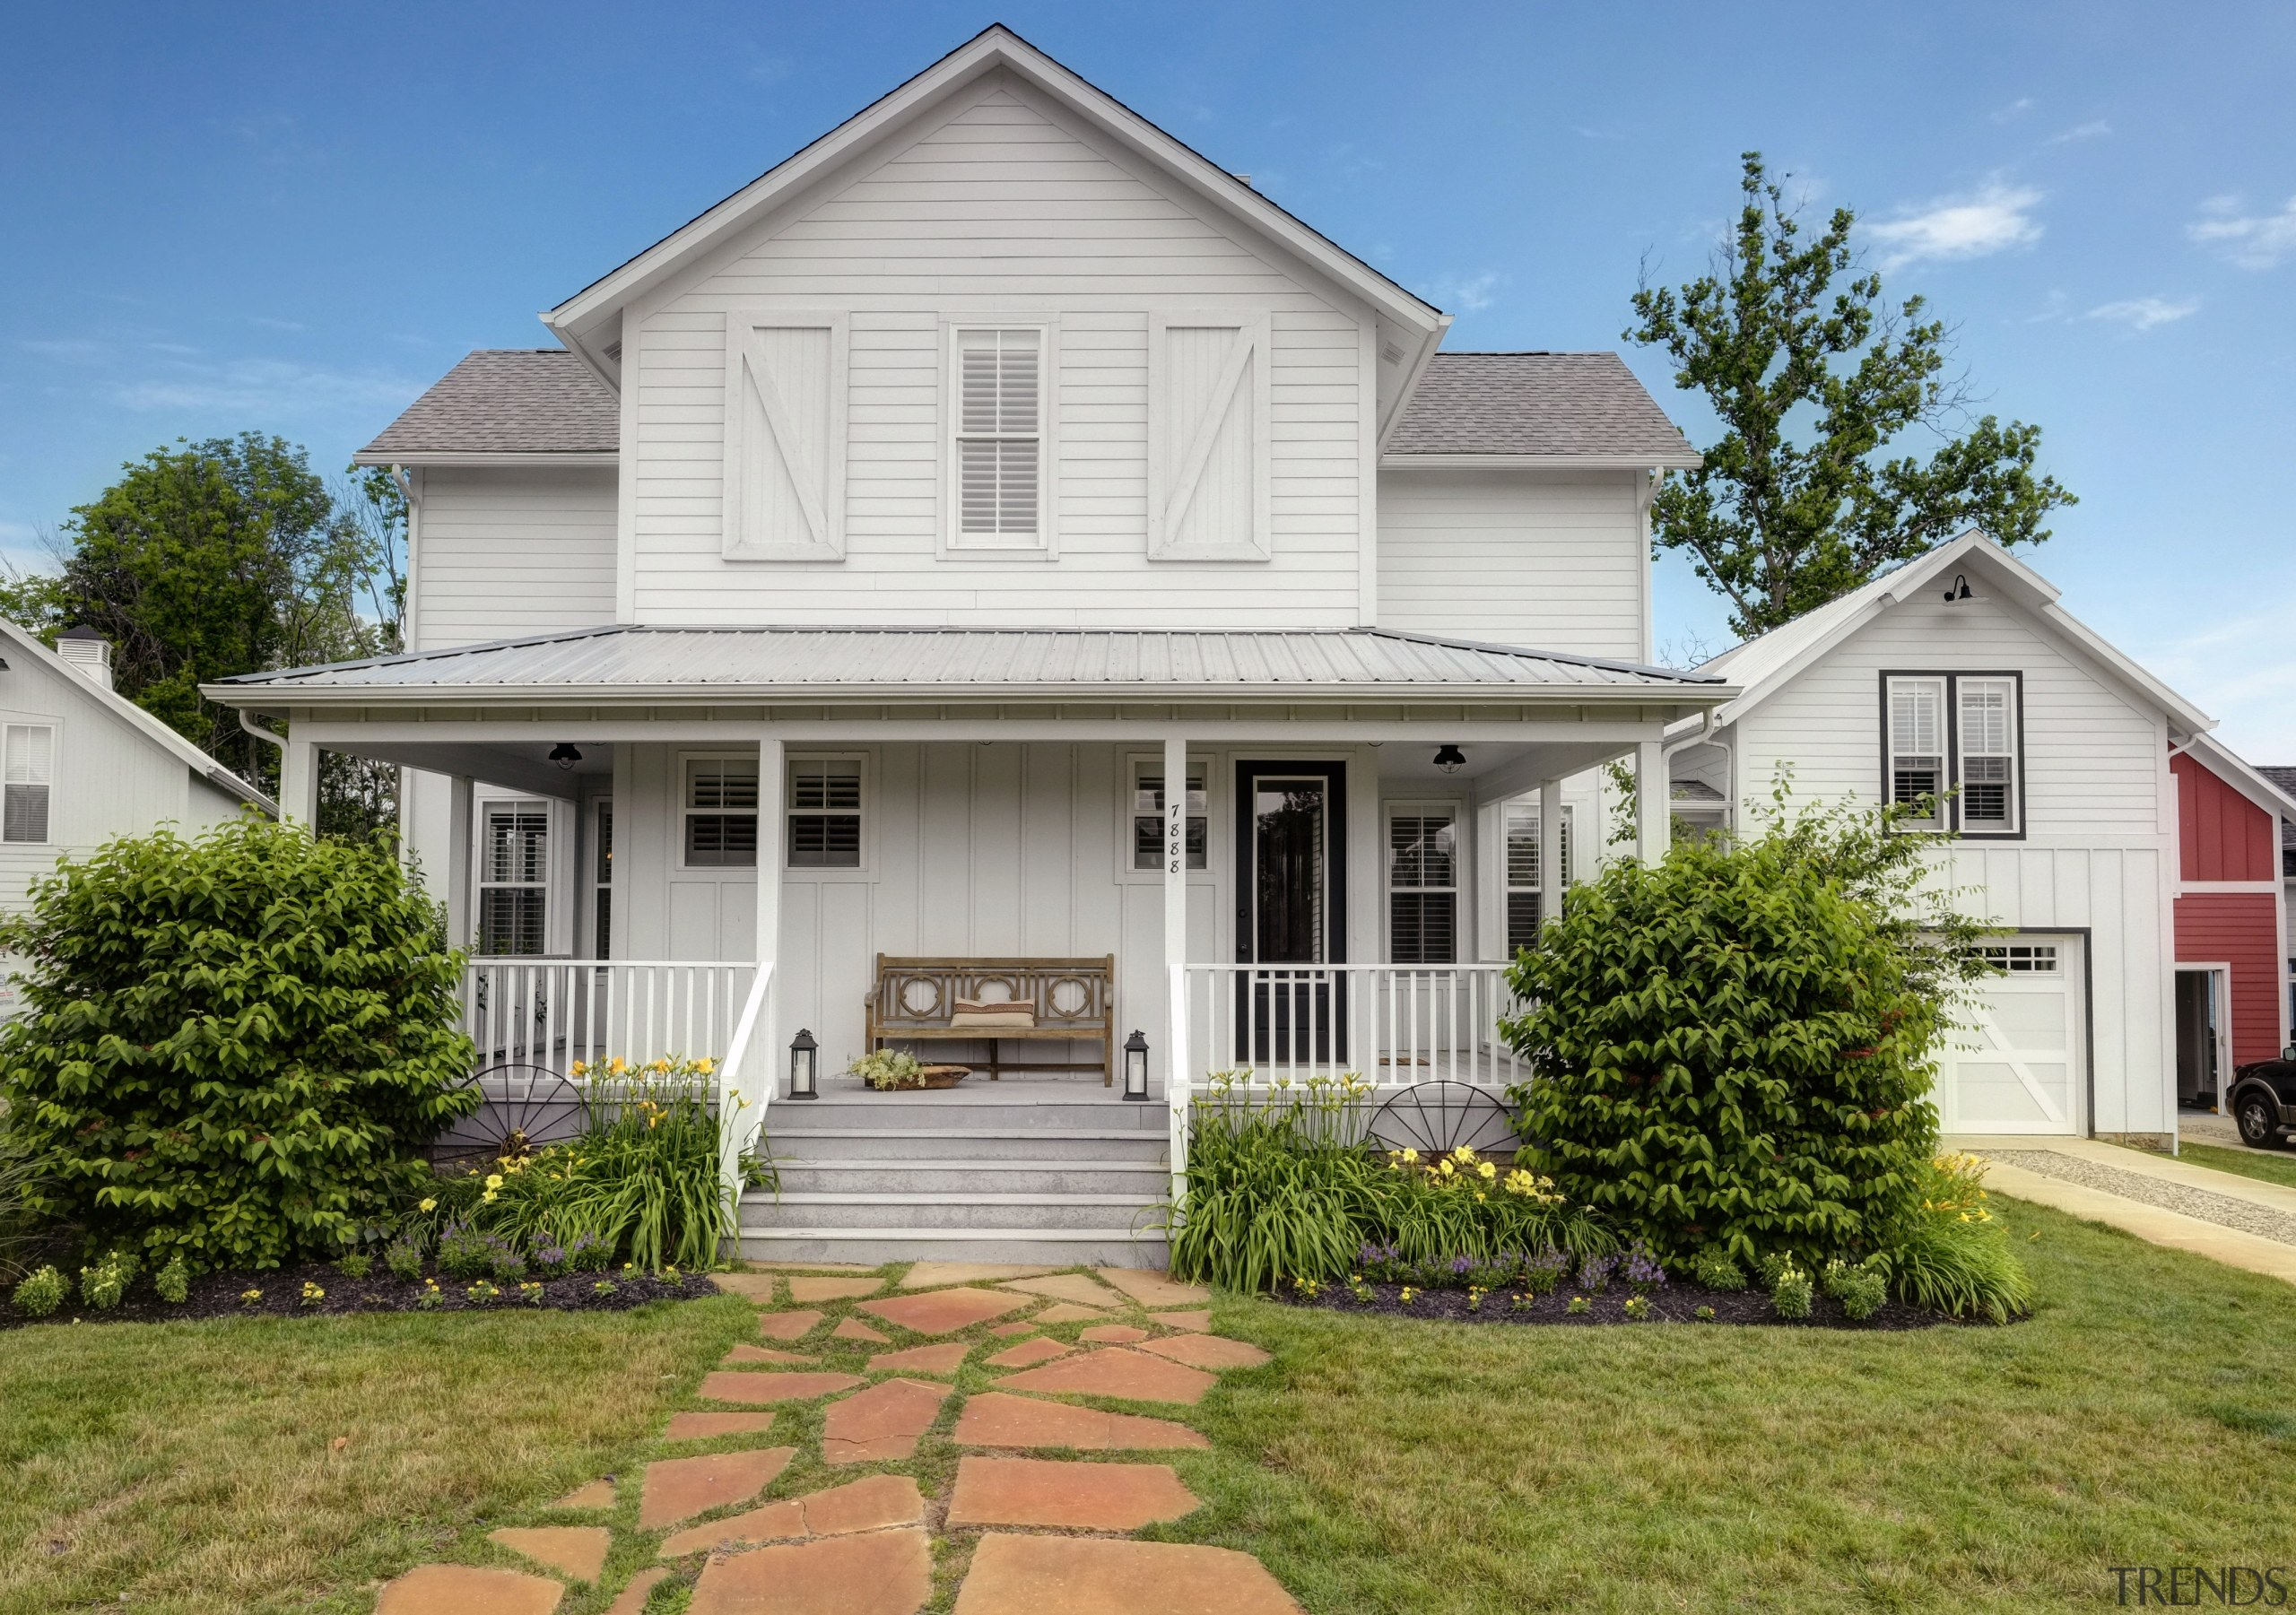 Amish style new home - Amish style new cottage, elevation, estate, facade, farmhouse, historic house, home, house, mansion, property, real estate, residential area, roof, siding, brown